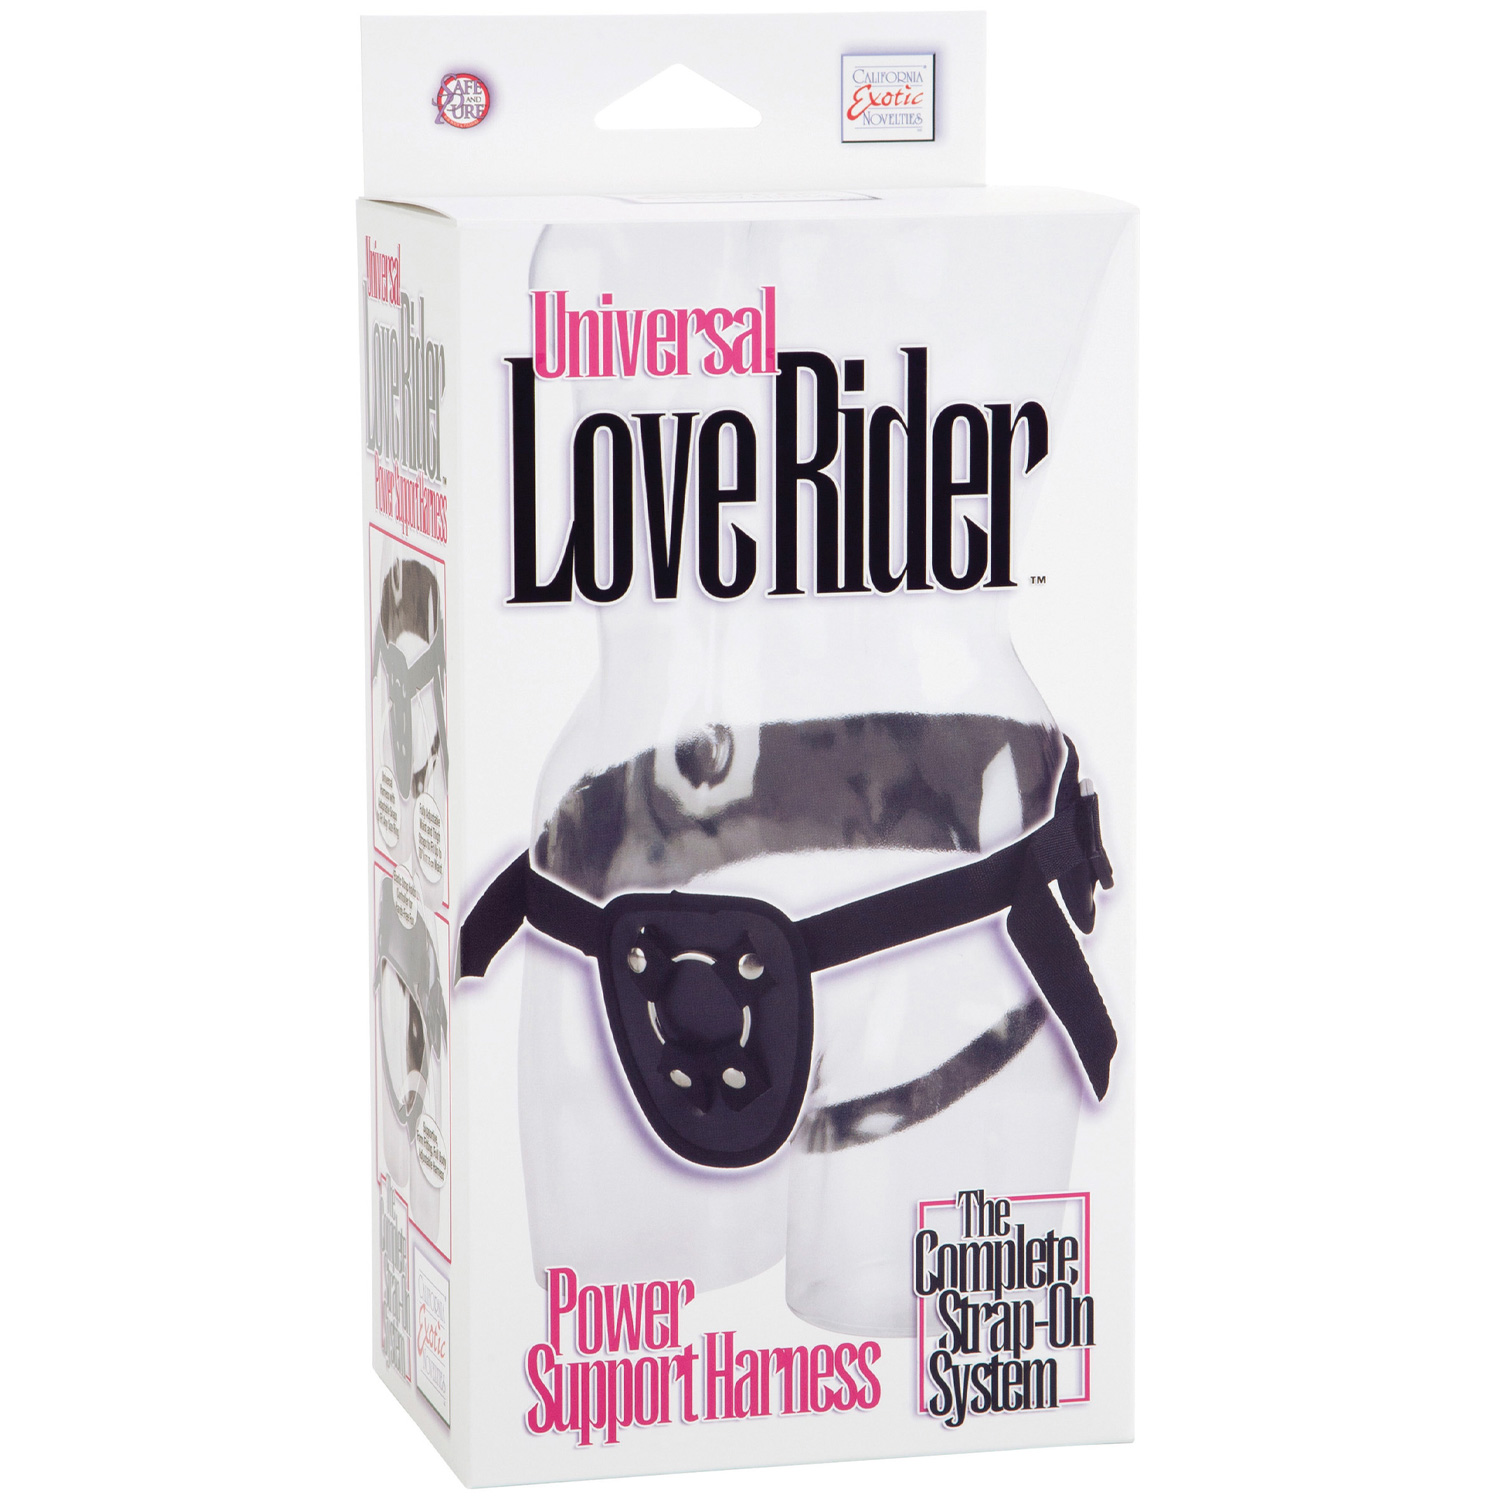 CalExotics Universal Love Rider Power Support Harness